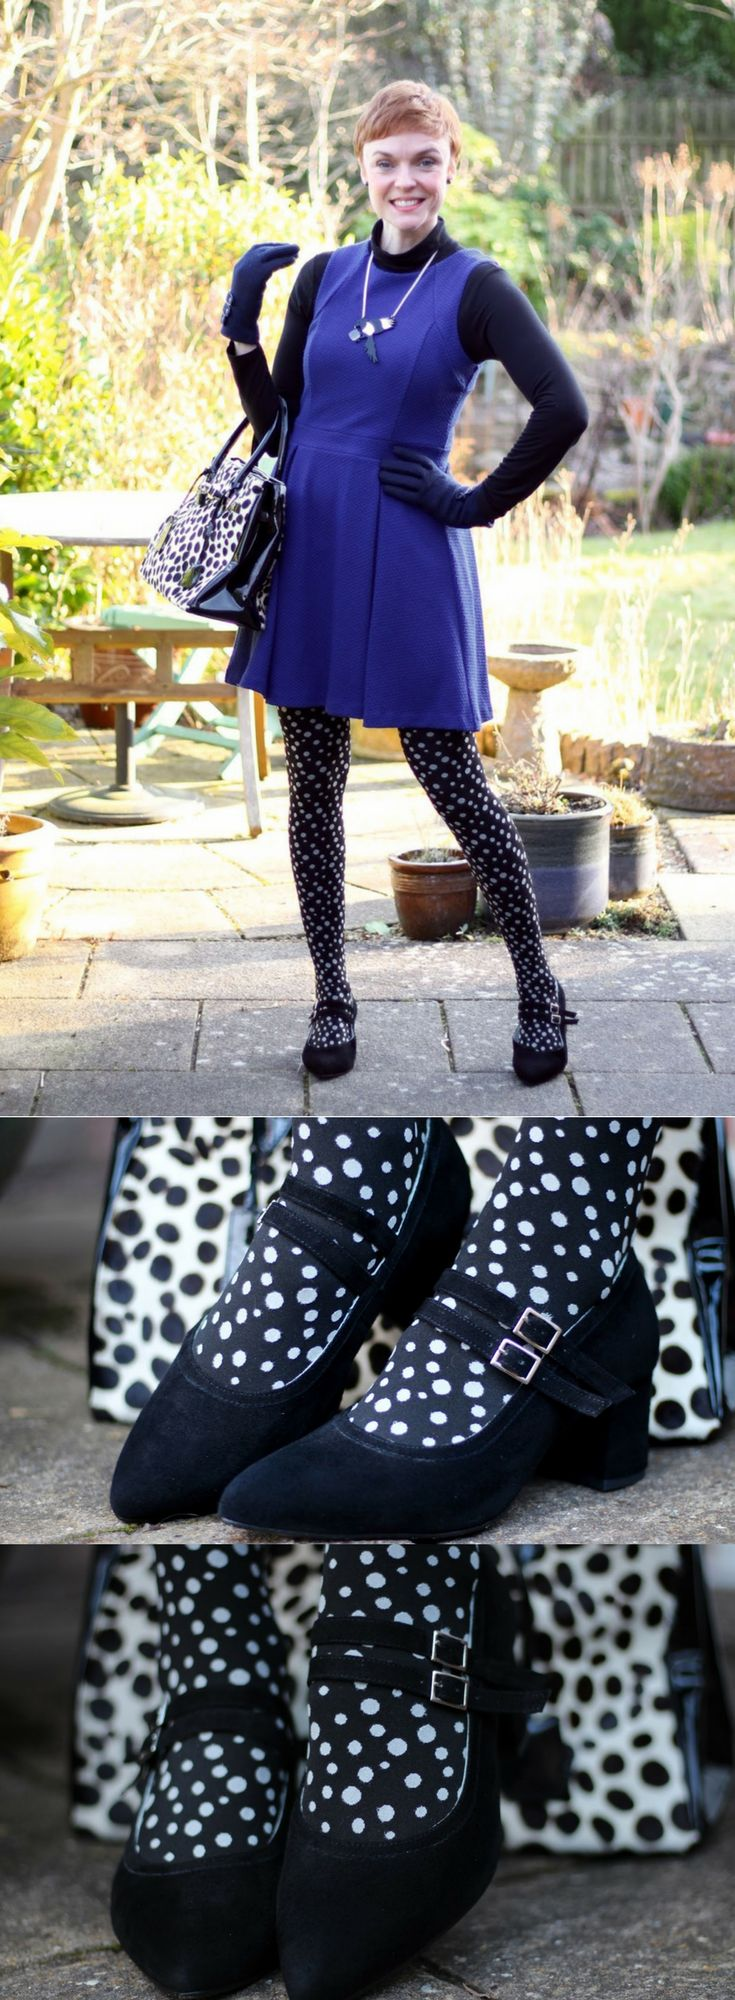 The beautiful blogger Samantha of www.fakefabulous.com wearing Calla shoes for bunions. These Mary Jane block heel court shoes look so pretty paired with the polka dot tights!